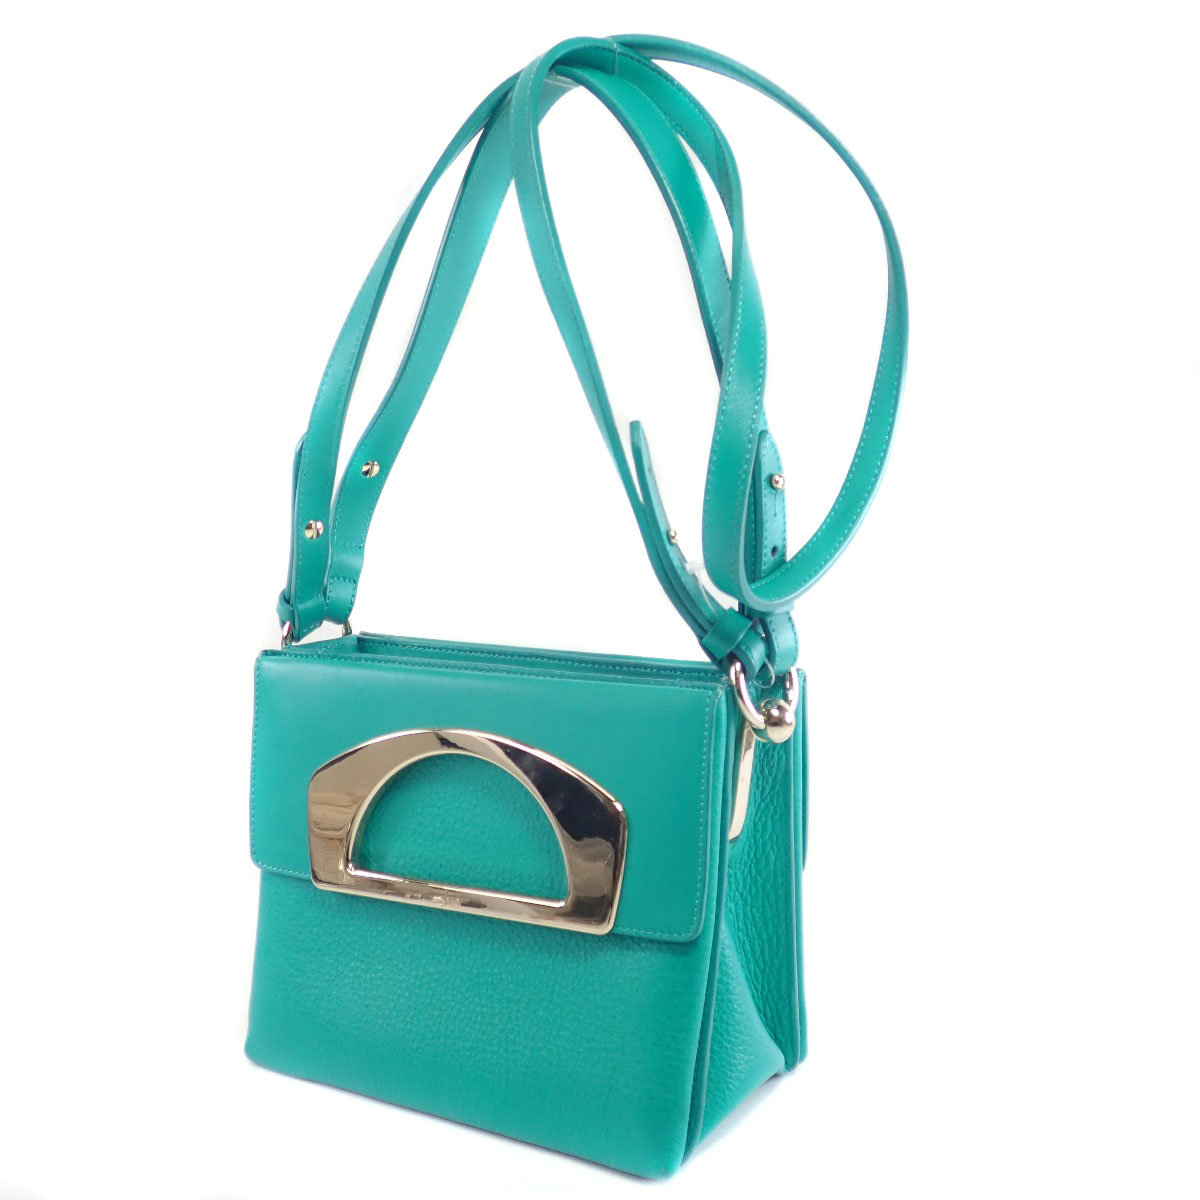 73c1c28cf5a Christian Louboutin 【Christian Louboutin】 Handbag Leather Women ー The best  place to buy Brand Bags Watches Jewelry, Brand Bargain